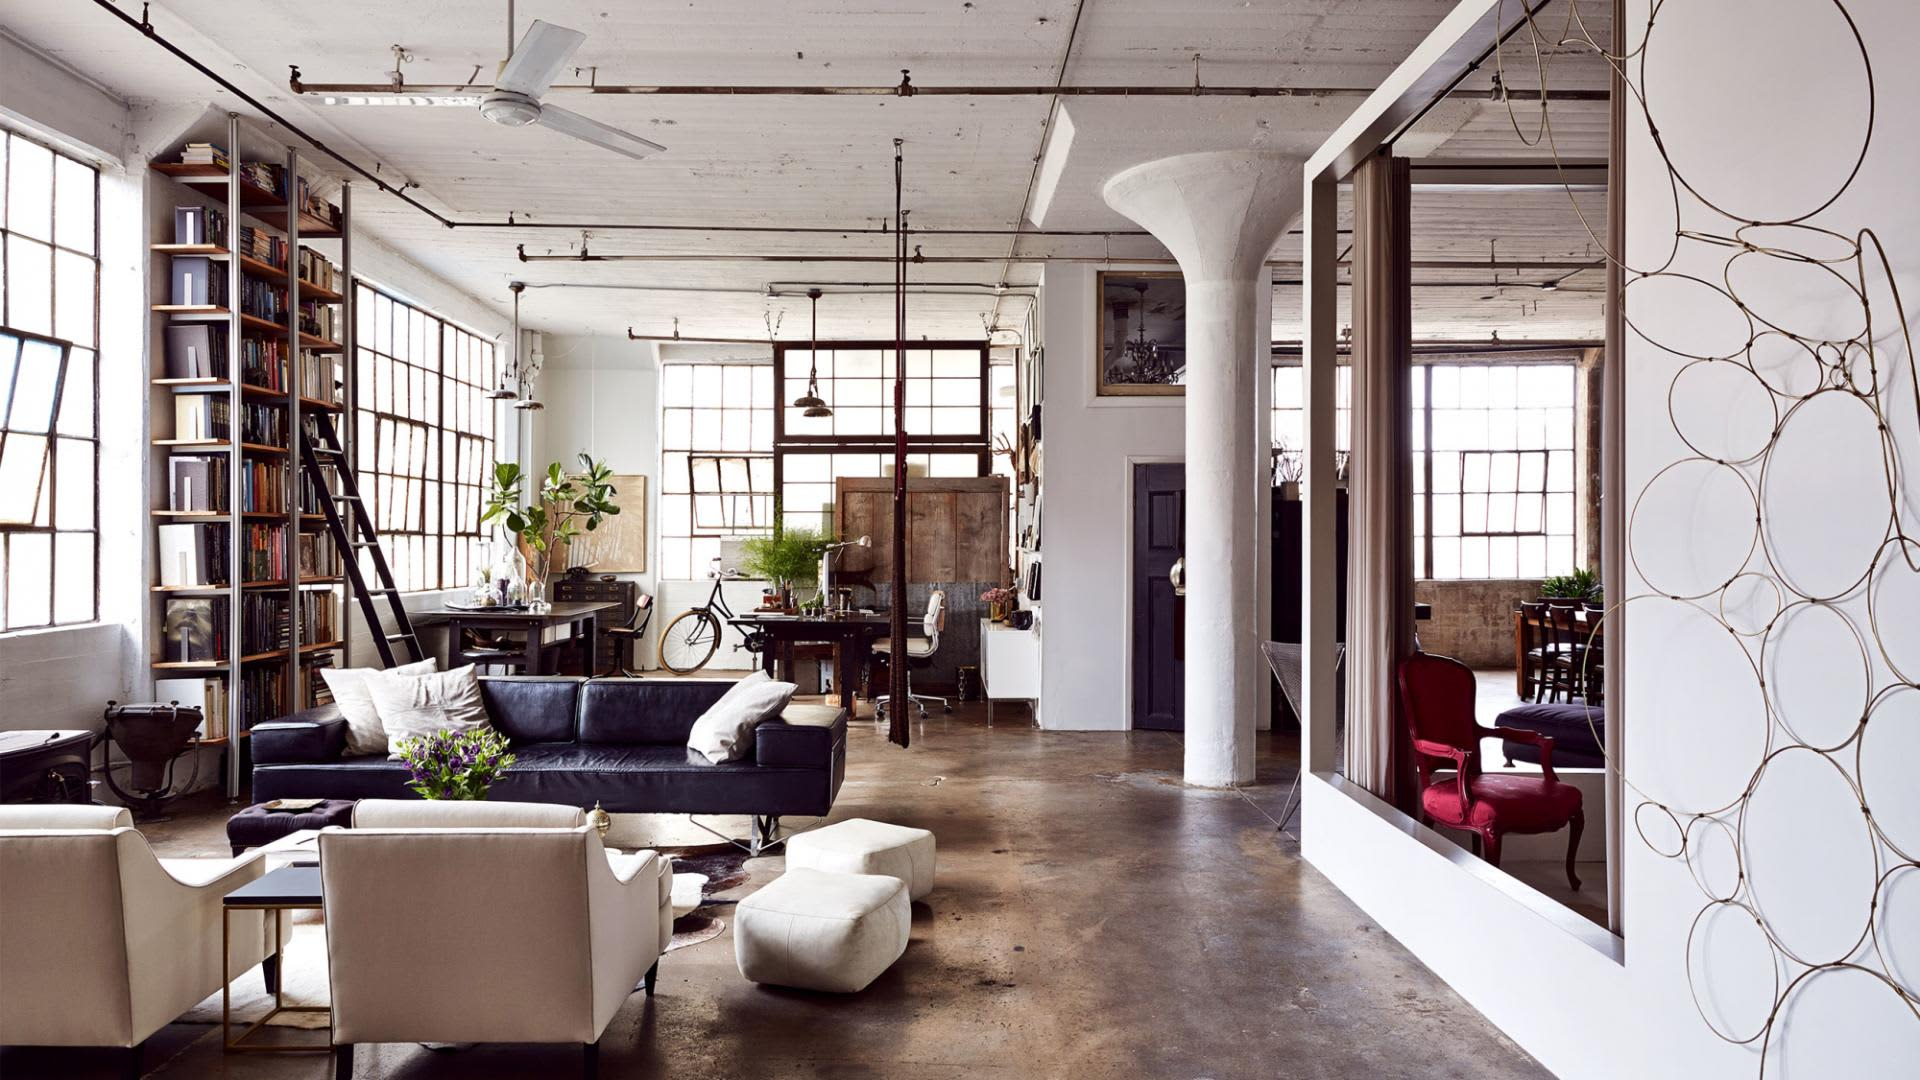 extraordinary new york loft living room | 5 Beautiful New York Lofts to Dream About | Apartment Therapy